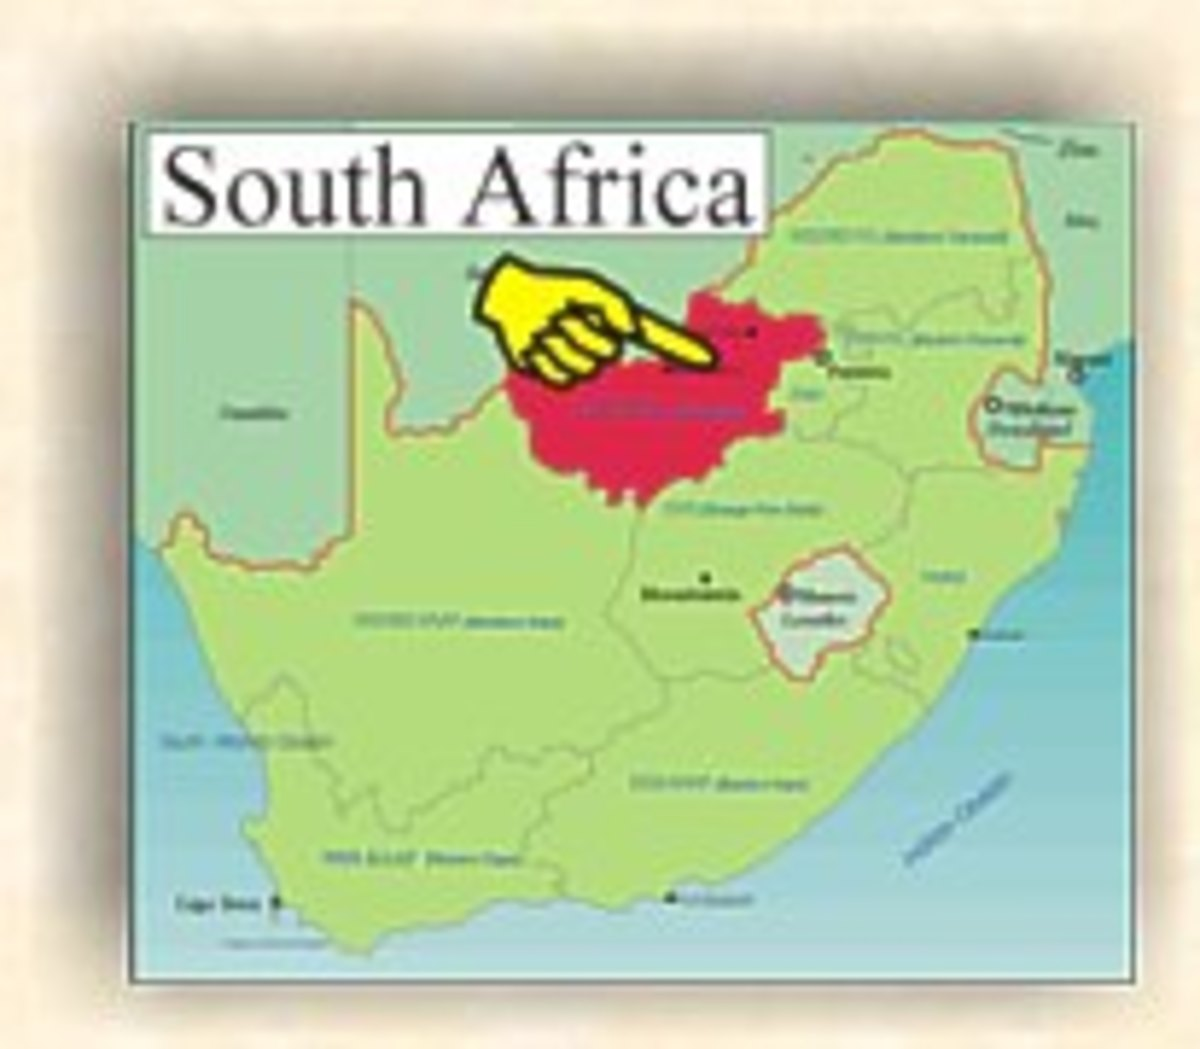 Travel in South Africa - North West Province - from Klerksdorp to Groot Marico